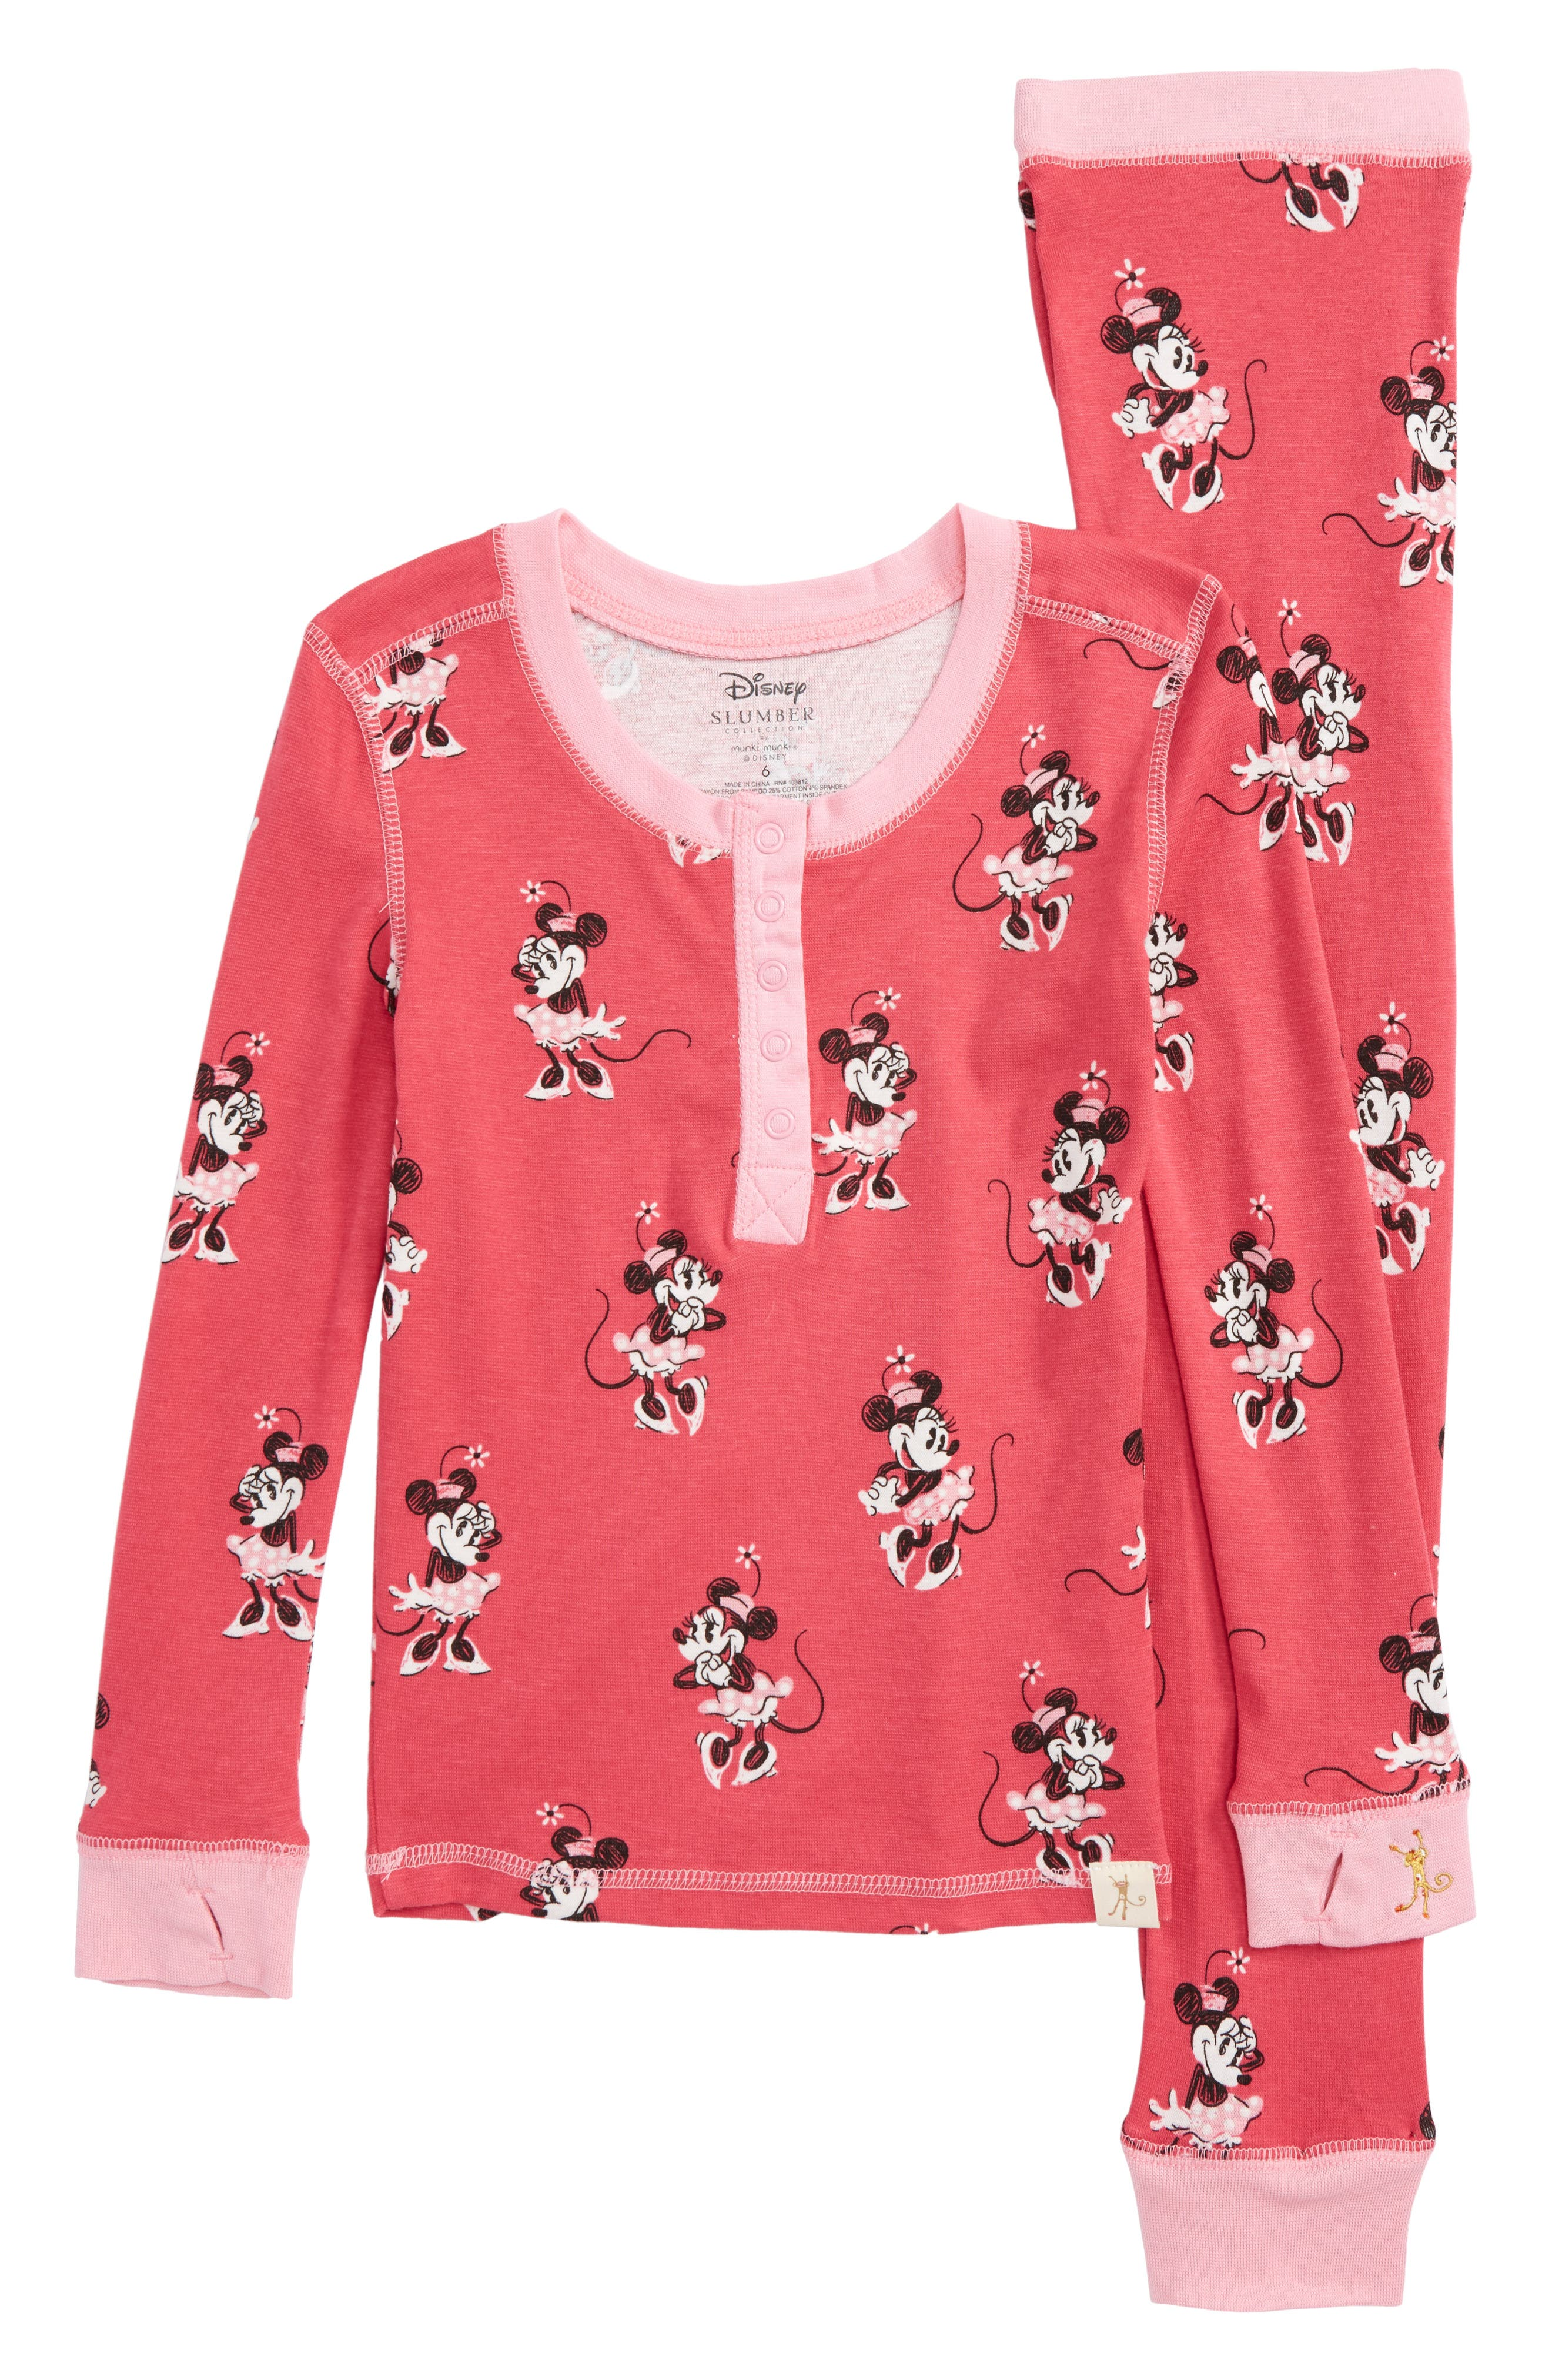 Disney – Minnie Mouse Fitted Two-Piece Pajamas,                         Main,                         color, Pink Blush Minnie